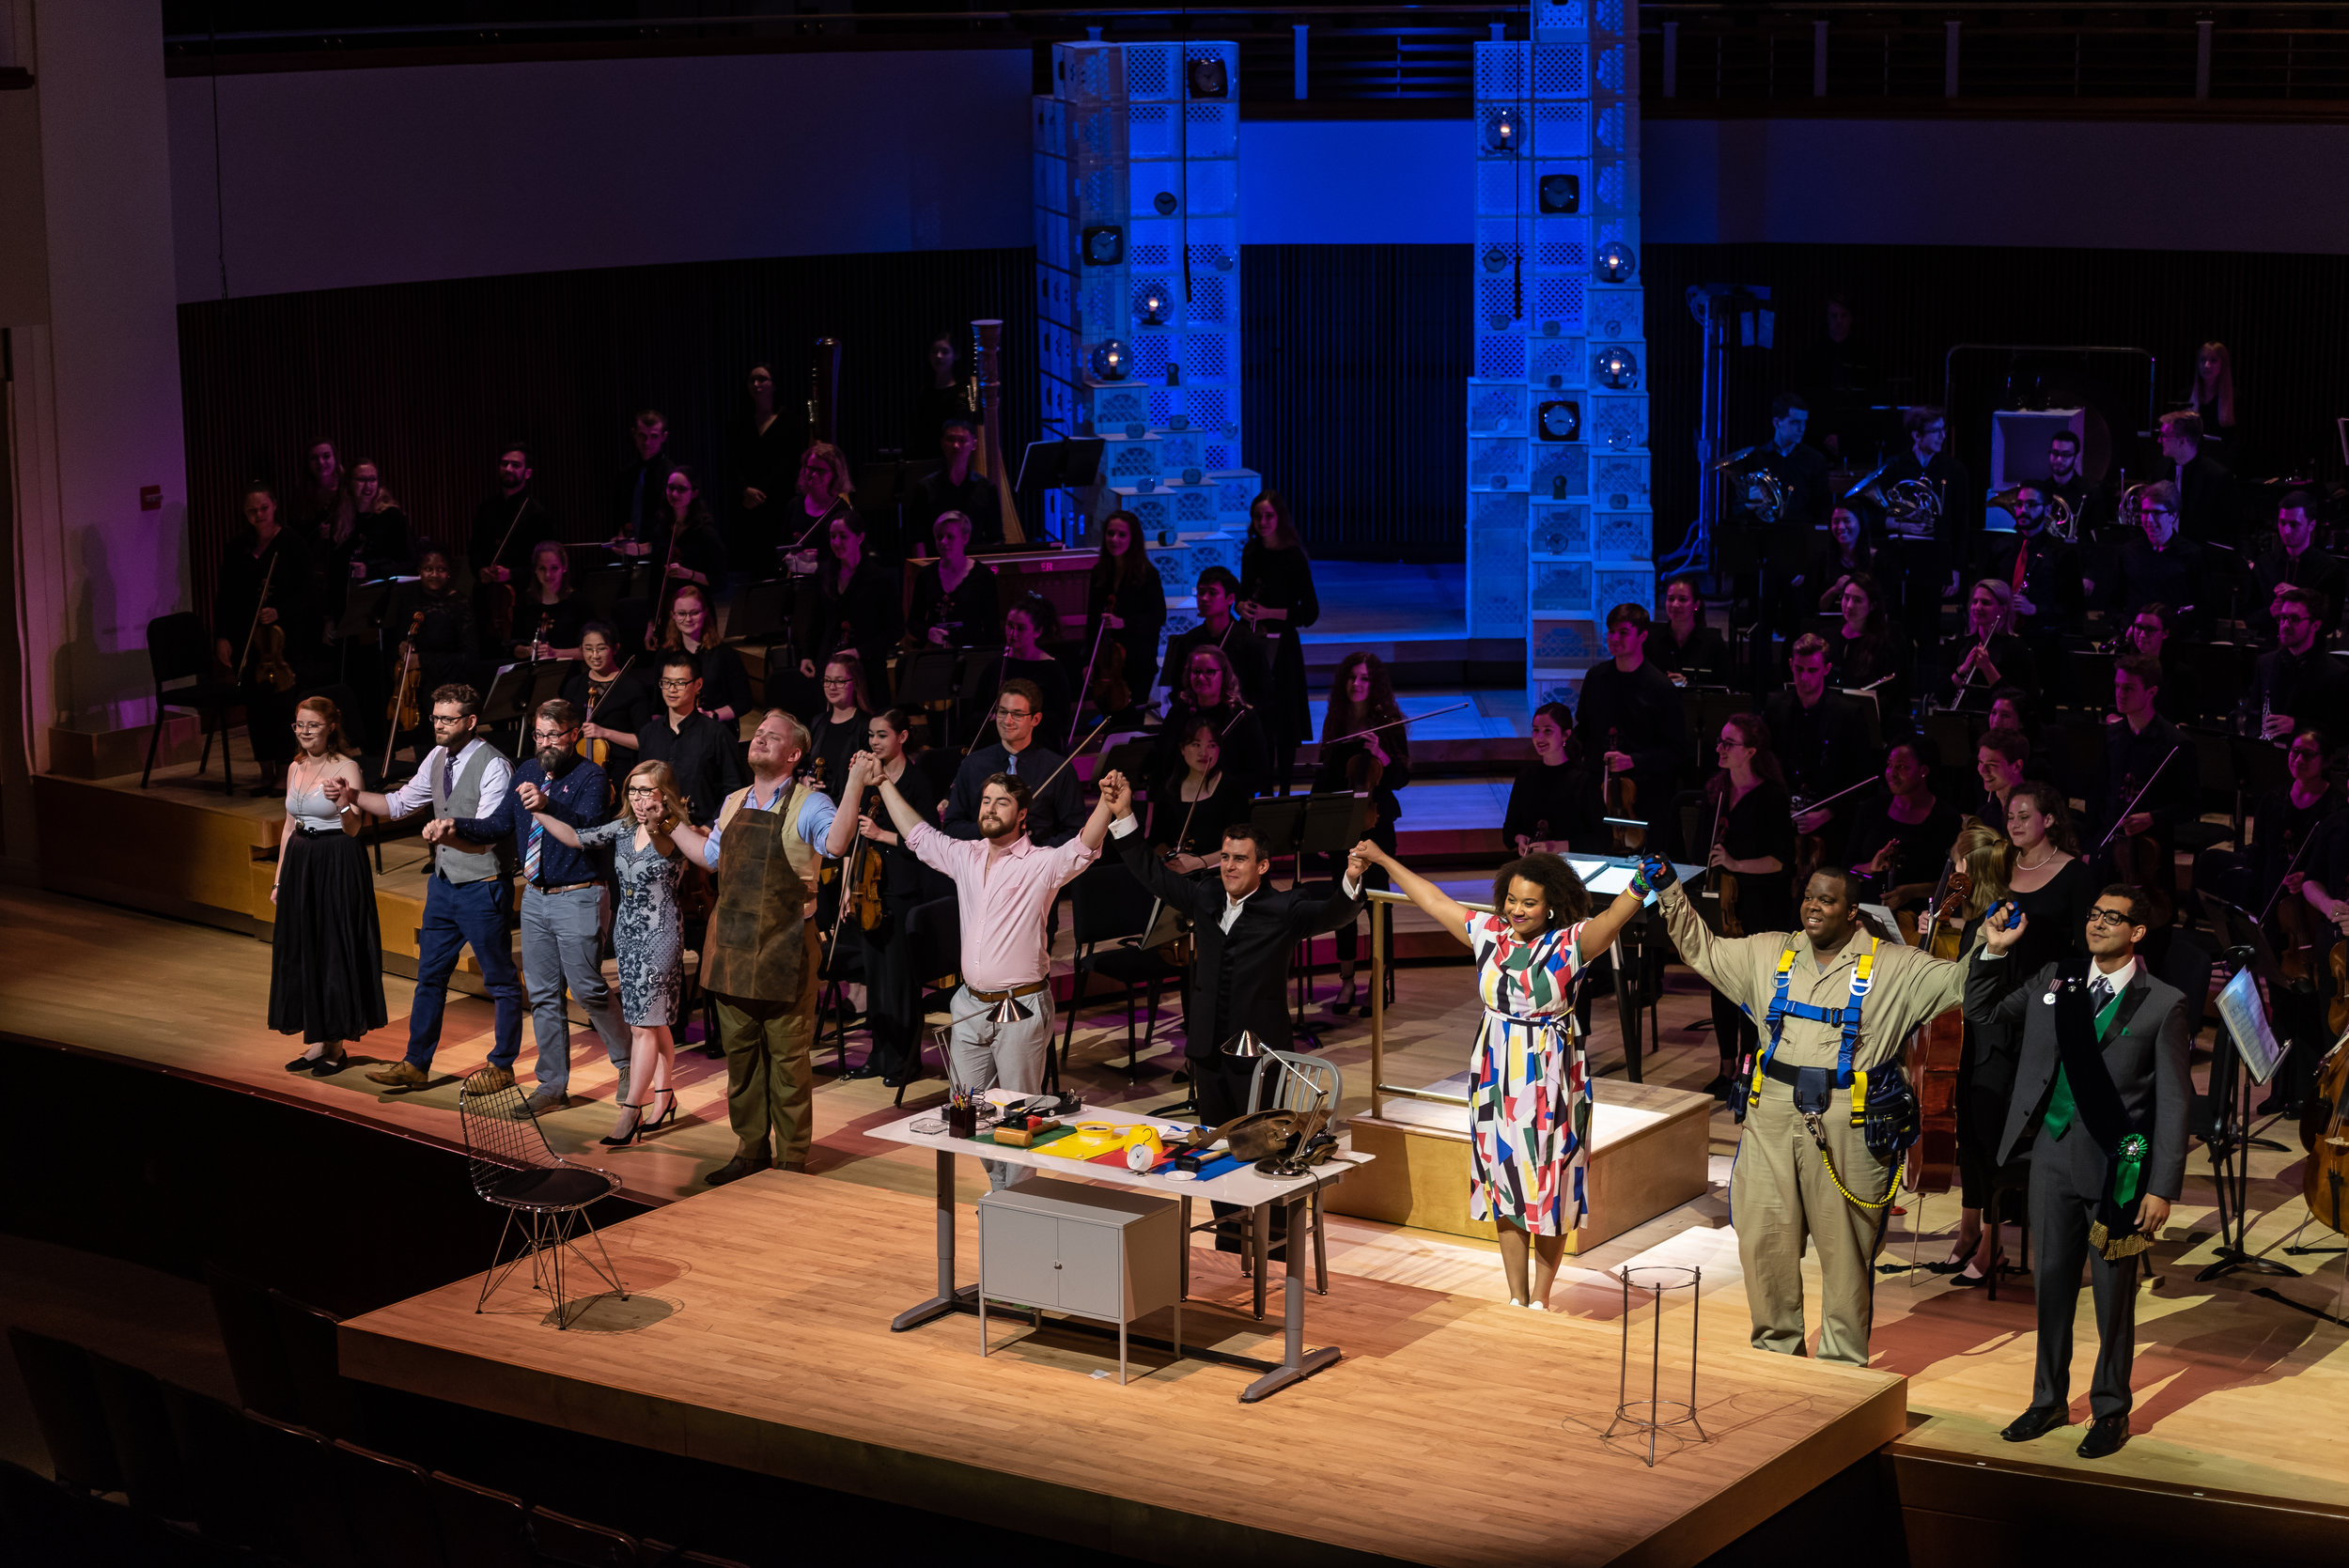 The  L'heure espagnole  creative team, conductor, cast, and orchestra taking bows. Photo by Rob Wallace/MIndful Photo; courtesy of Wolf Trap Opera.